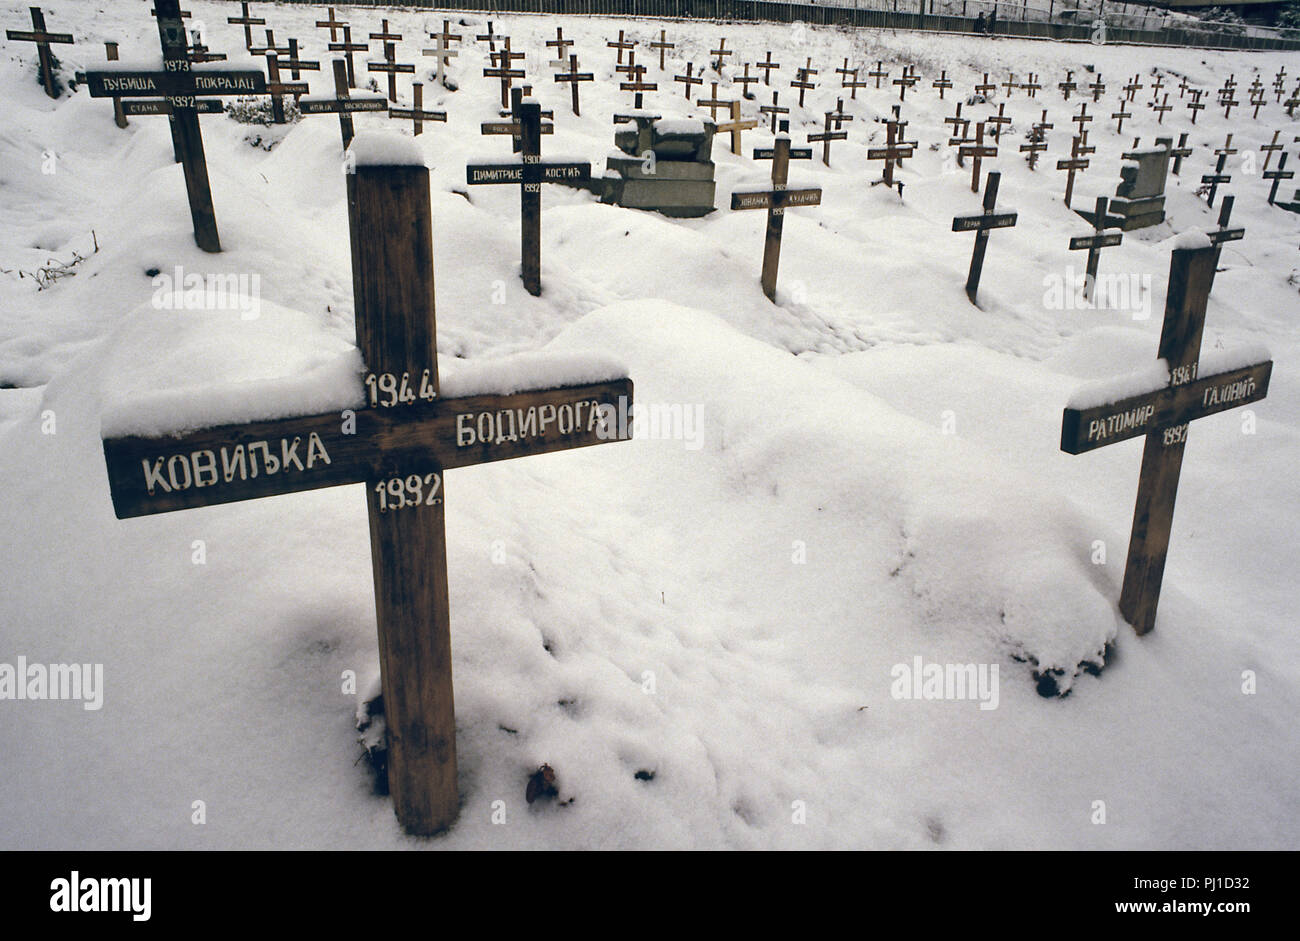 4th March 1993 A view of part of the Lion Cemetery in Sarajevo, just below the Kosevo Hospital: dozens of wooden crosses in the snow are all dated 1992. They bear the names of Serb victims of the Siege of Sarajevo. - Stock Image